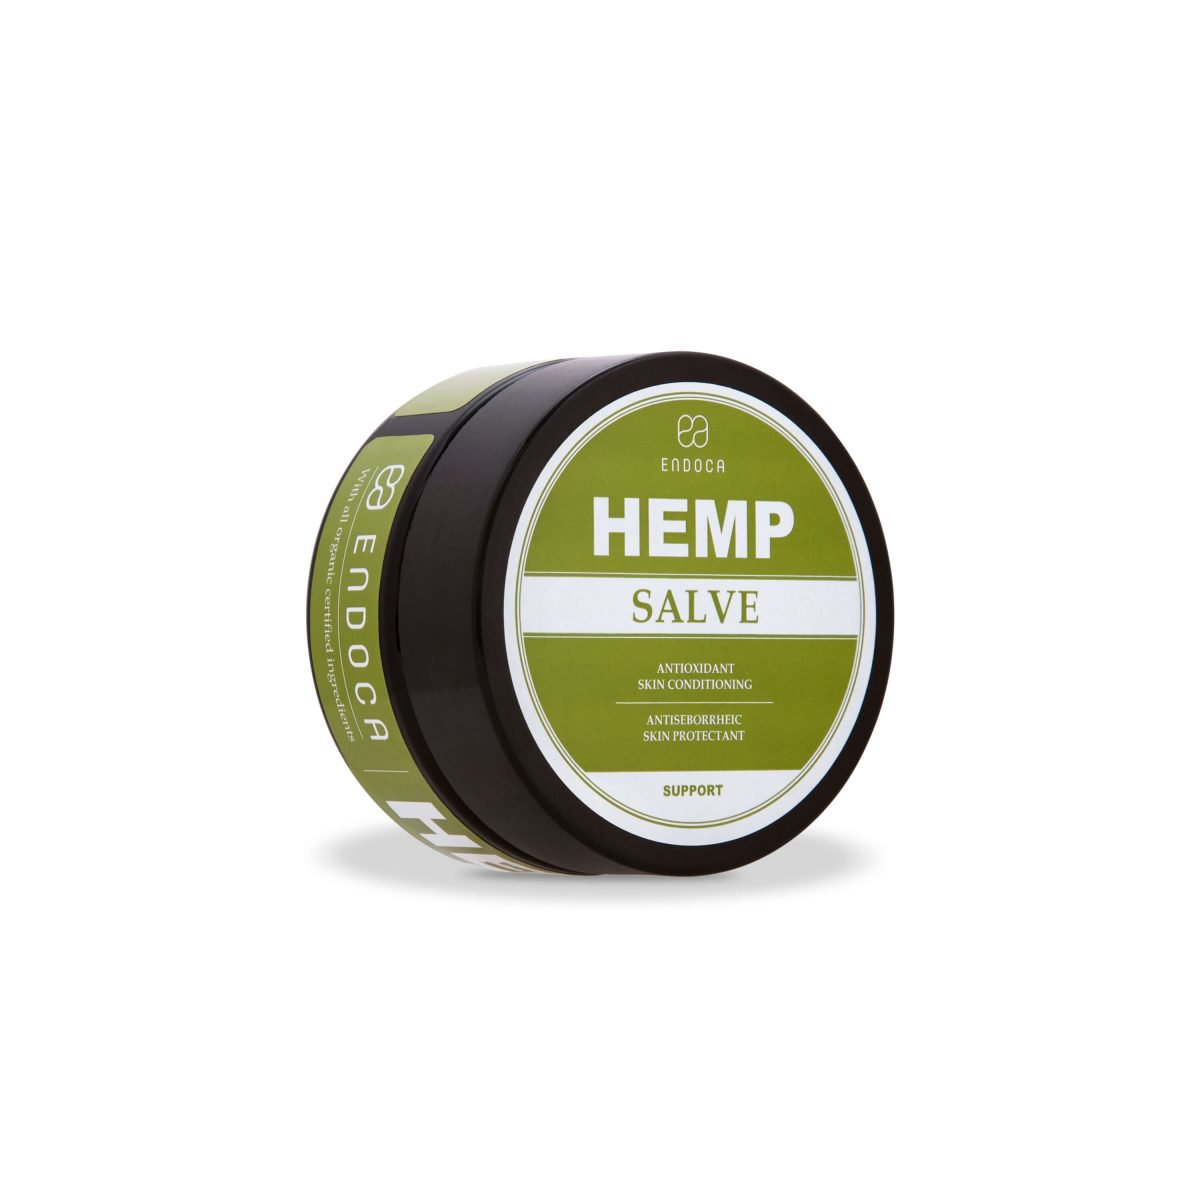 CBD Hemp Salve Body and Face Care with 750mg CBD | Endoca | CBD Skincare | uWeed | Swiss CBD Shop